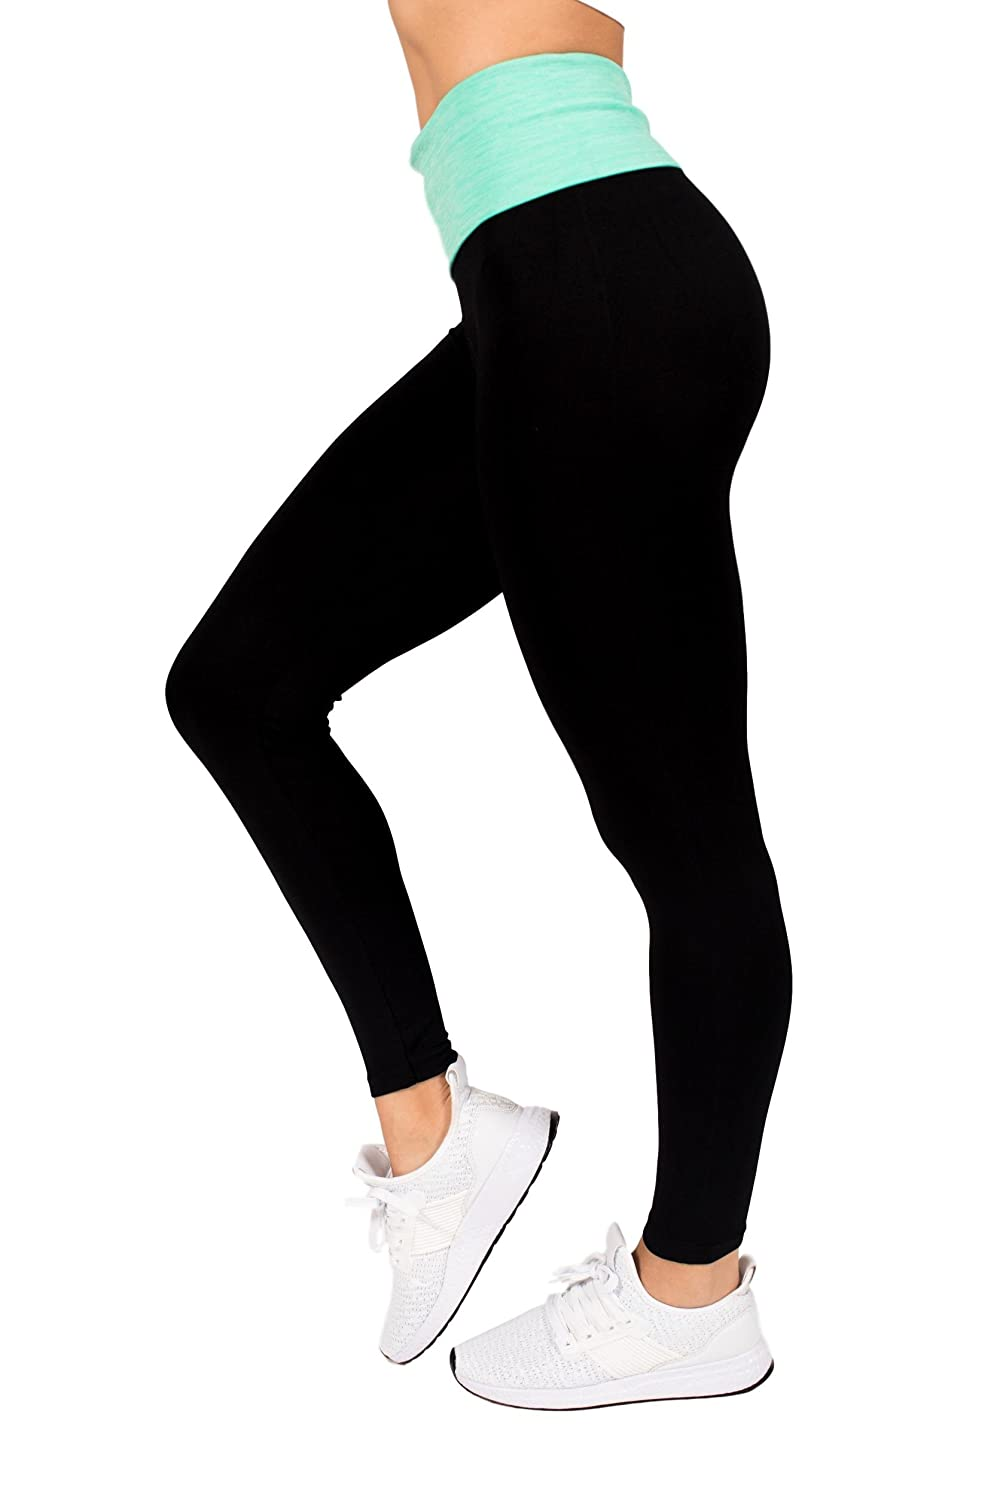 e52c4978d9ef3e Elan Verve Fitness Active Womens Light-Weight High Waisted Workout Yoga  Legging Pants by RAG (Small/Medium, Green) at Amazon Women's Clothing store: